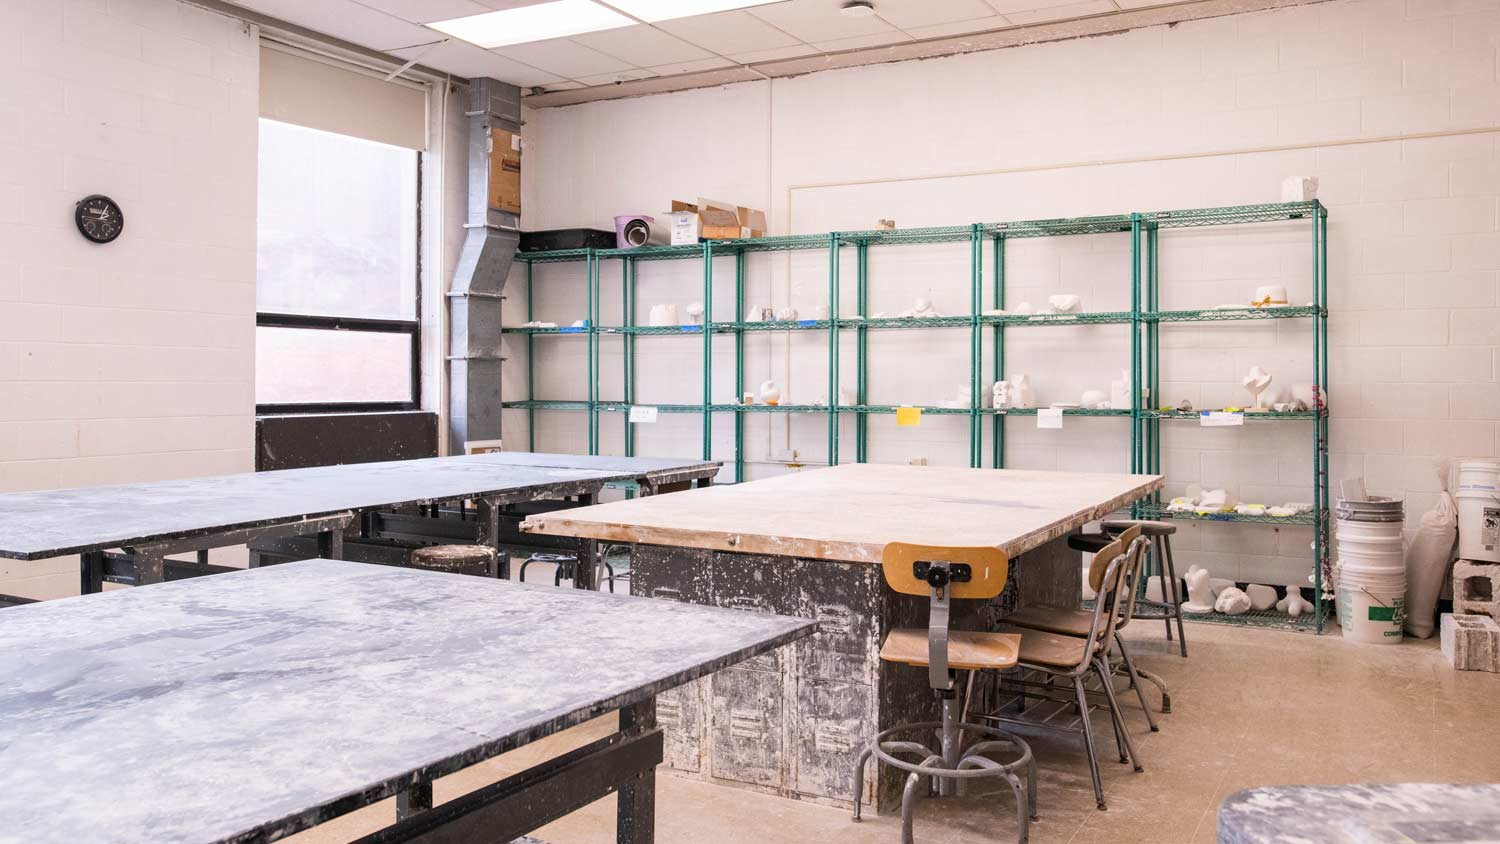 Plaster carving room with large work tables